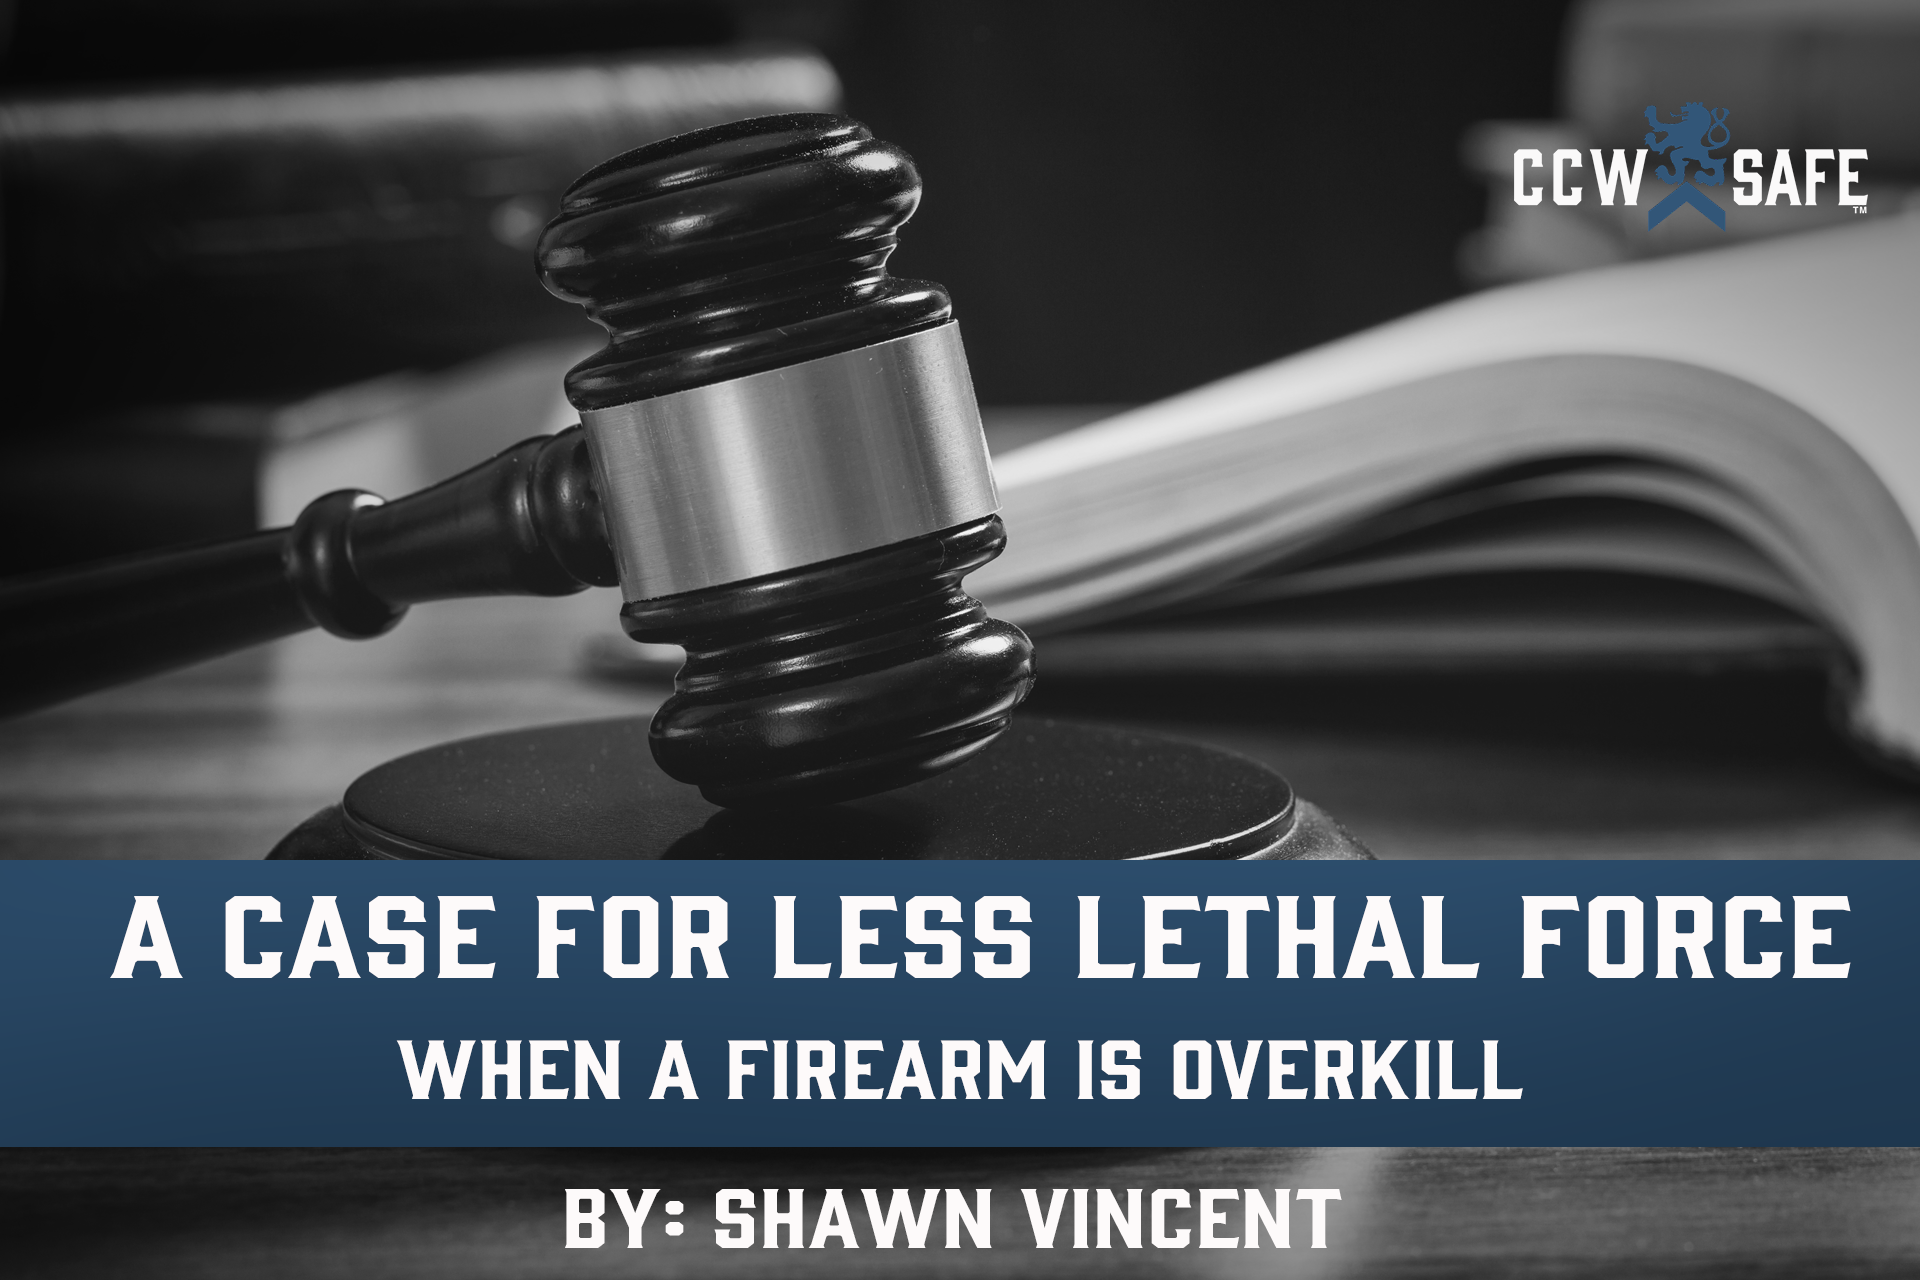 A Case for Less Lethal Force: When a firearm is overkill